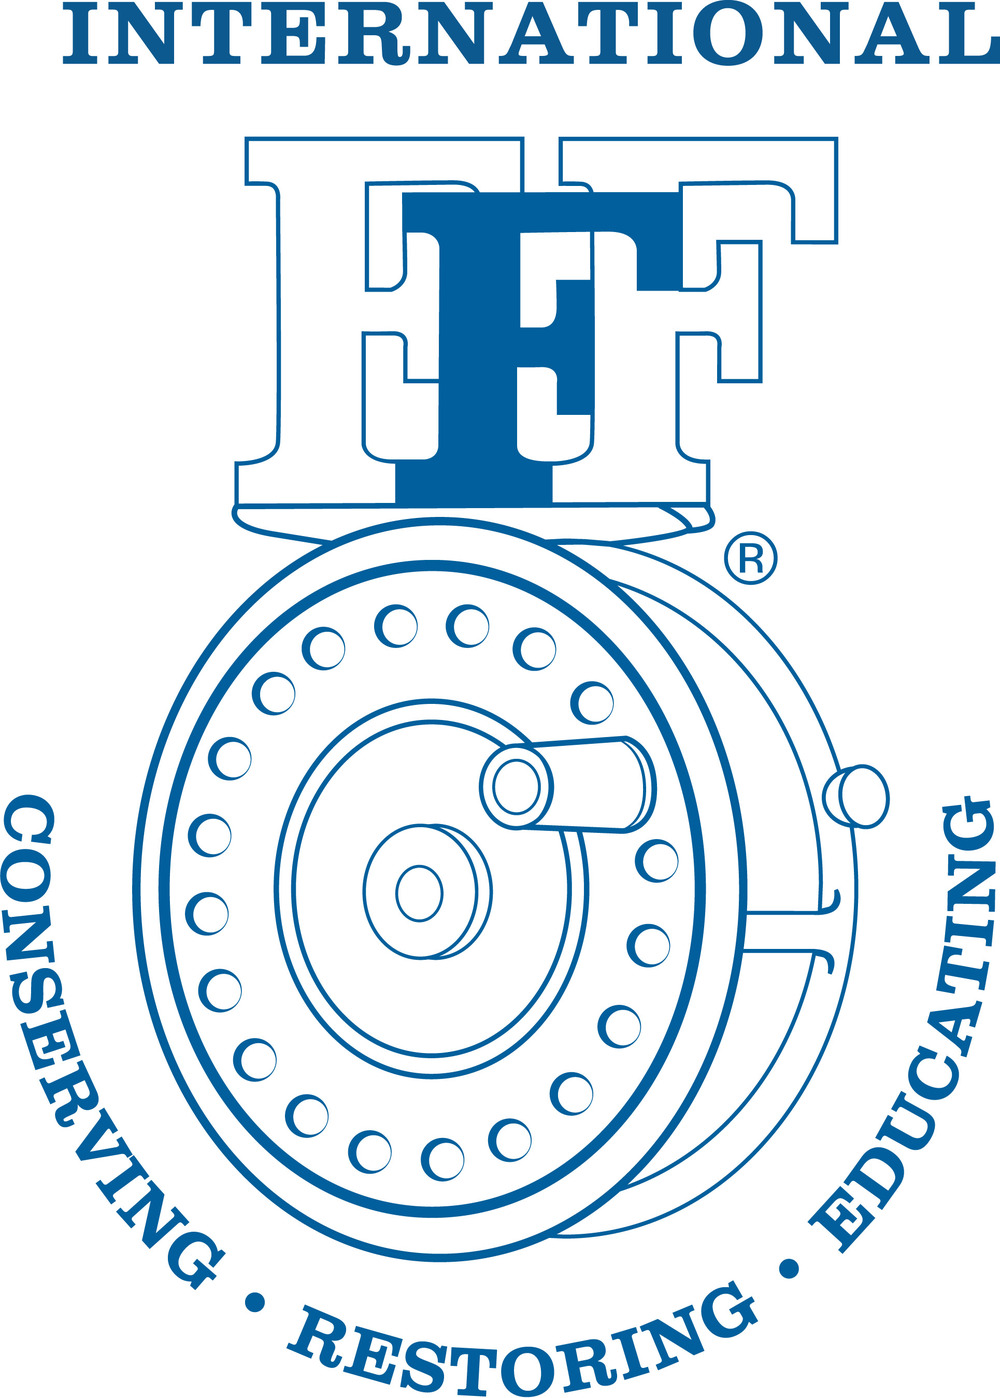 IFFF Logo blue-white w-mission.jpg